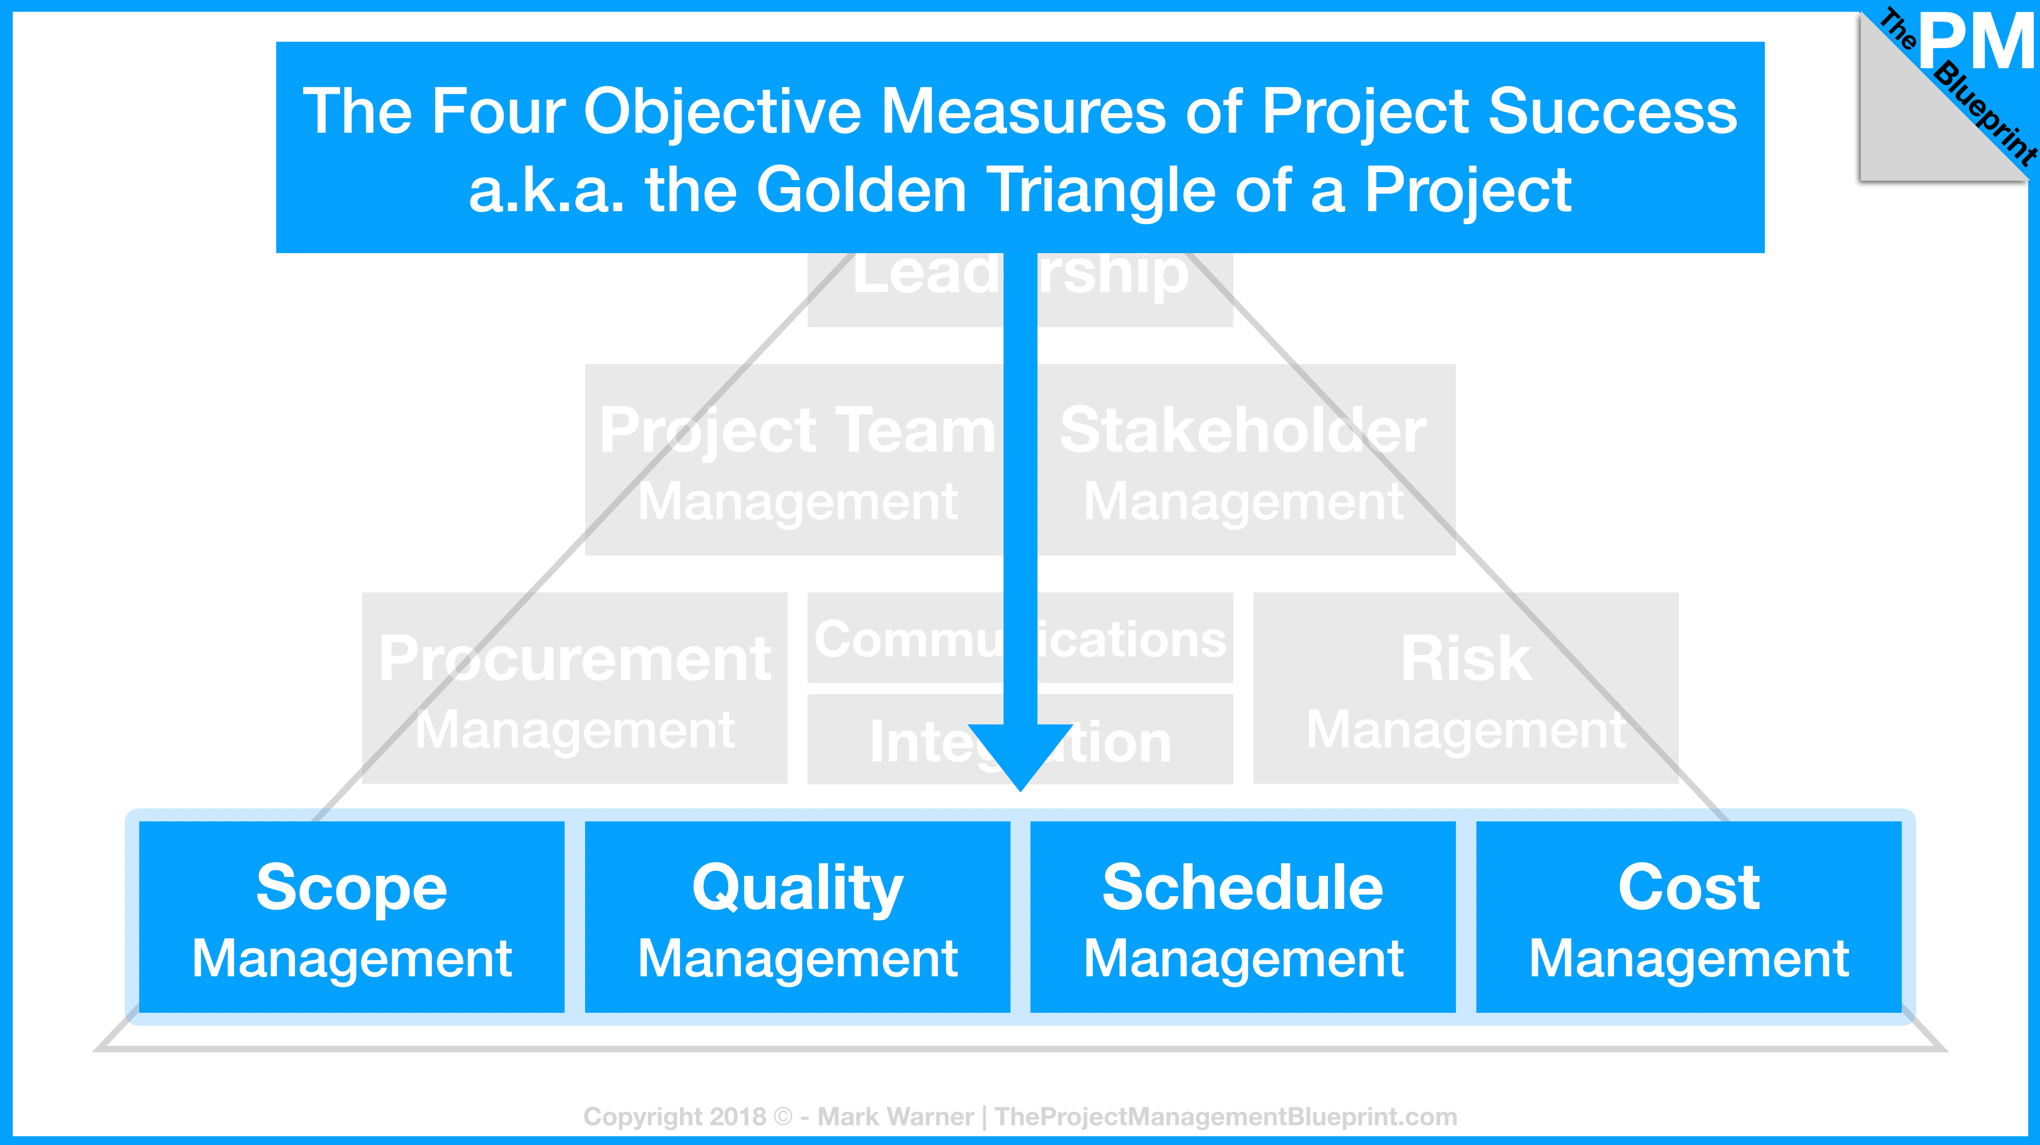 Objective Measures of Project Success.jpg